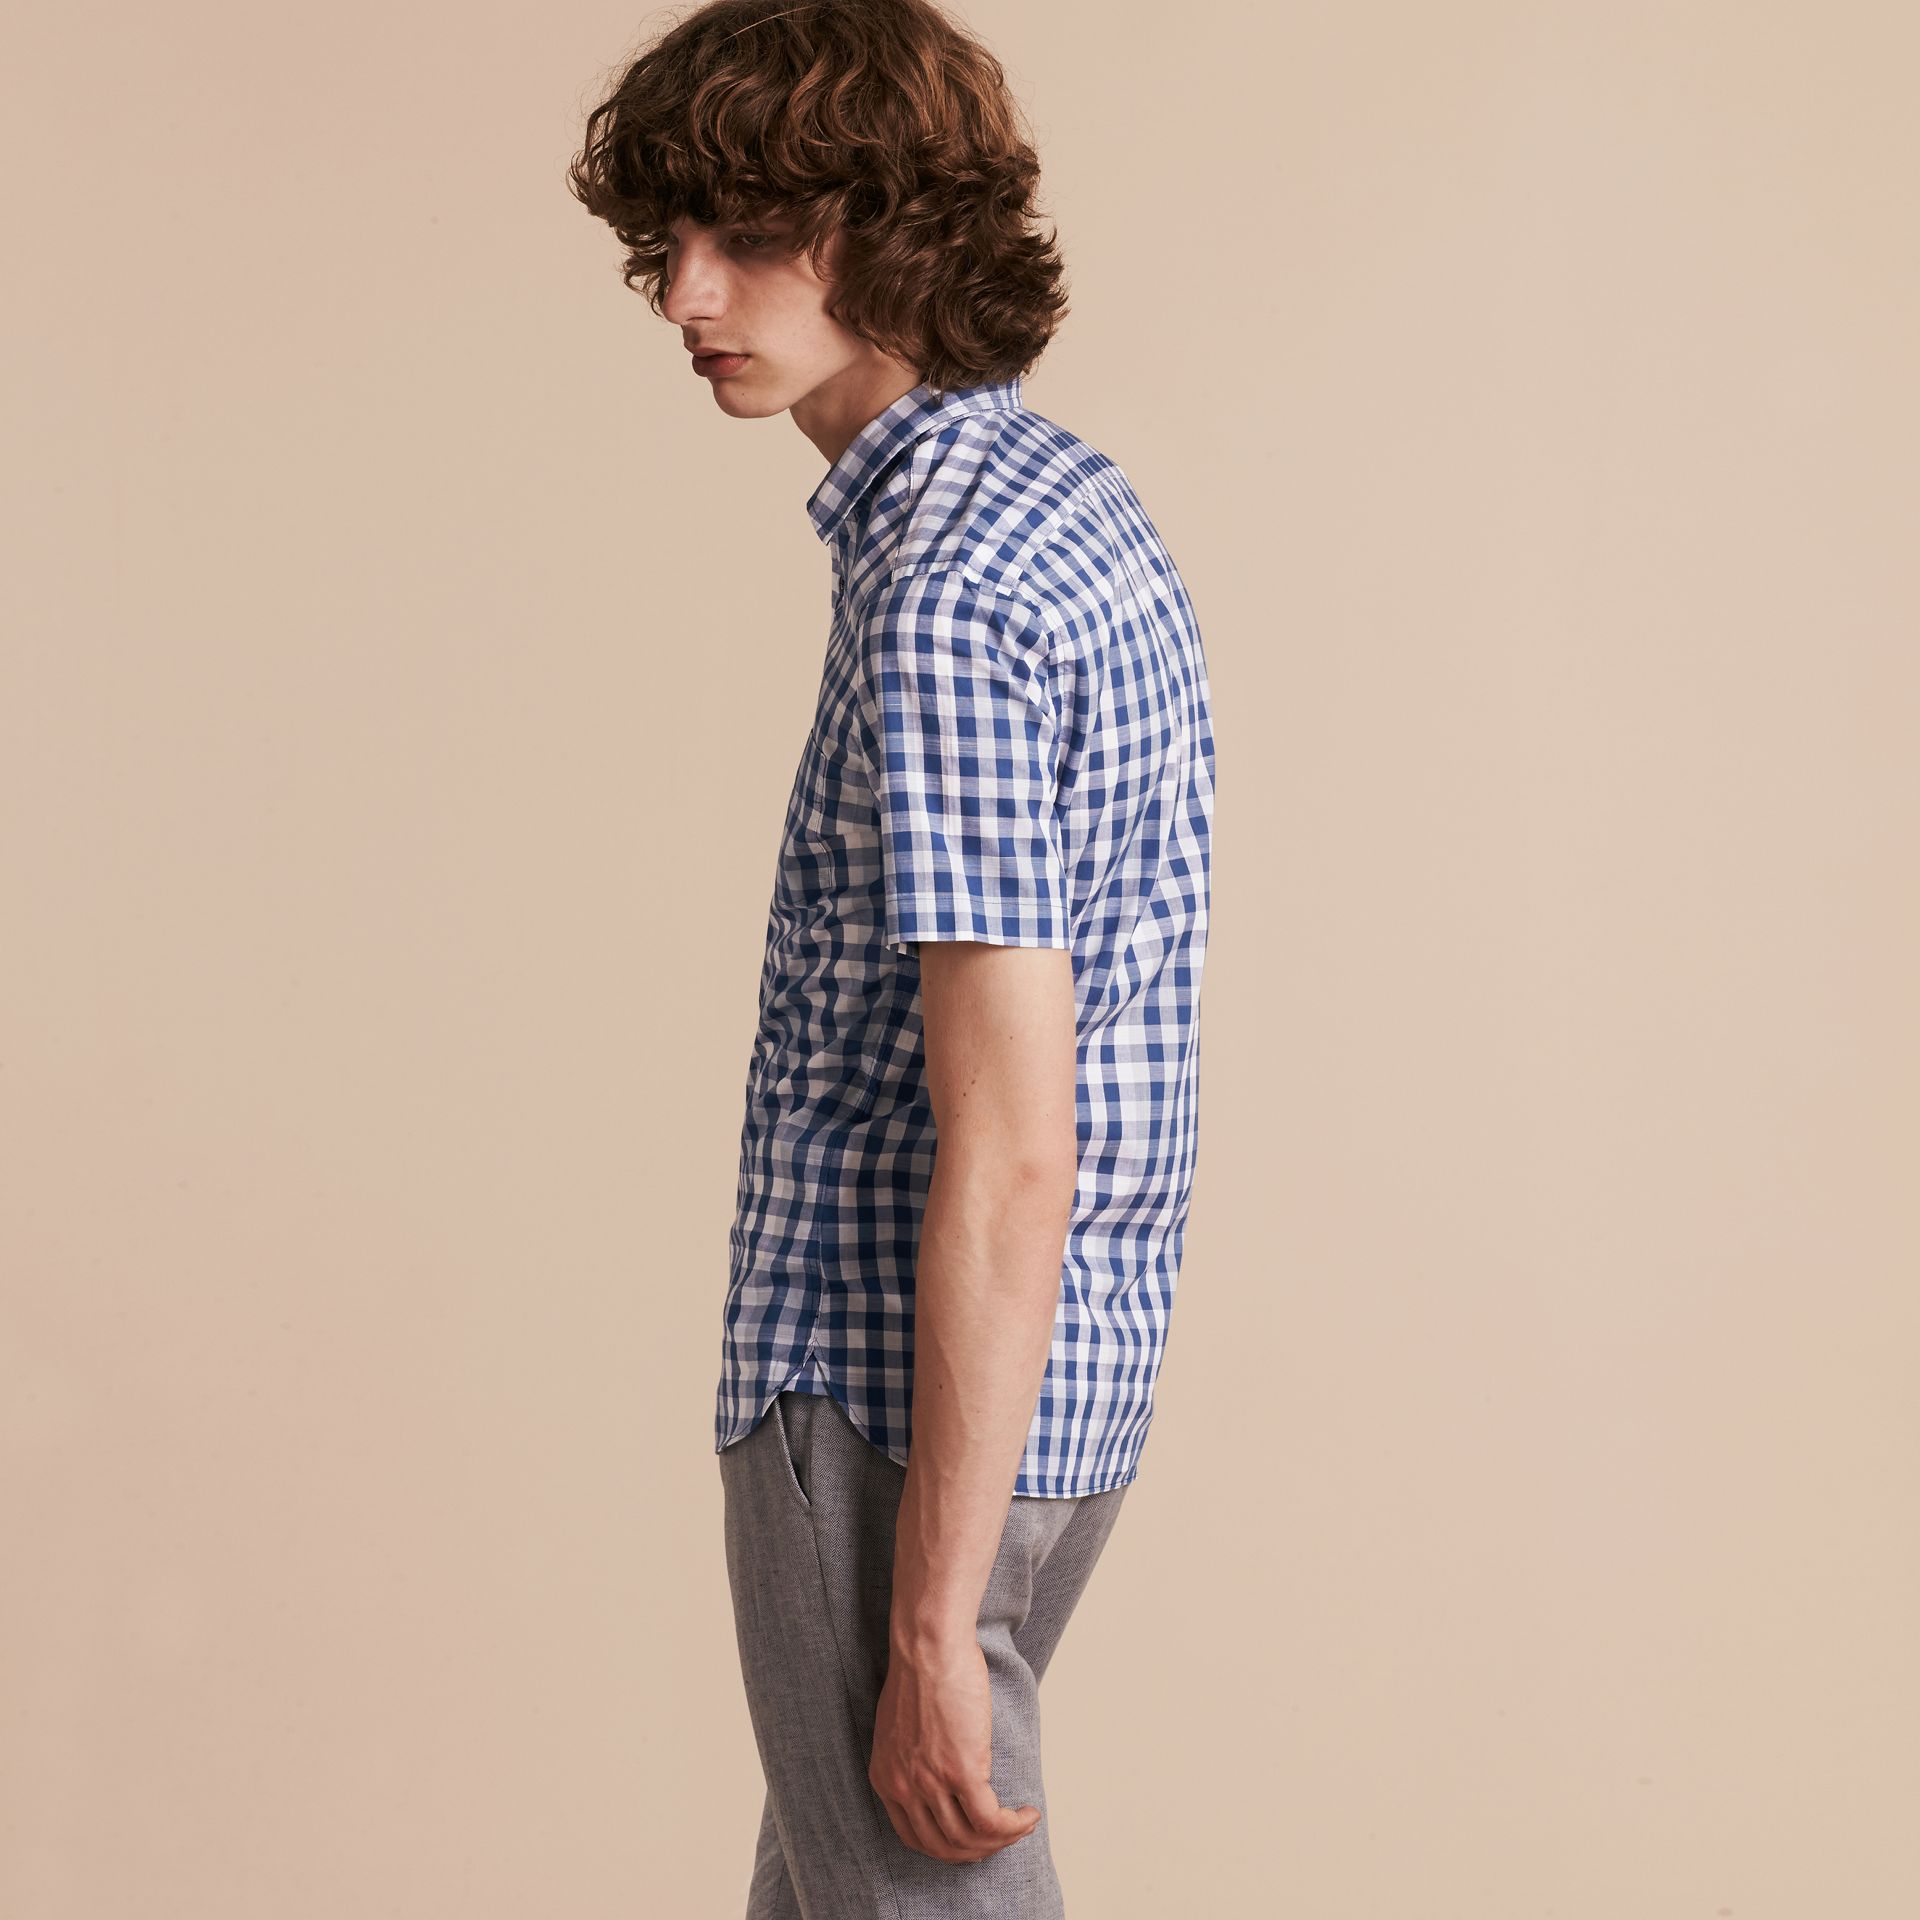 Bright steel blue Short-sleeved Gingham Cotton Shirt Bright Steel Blue - gallery image 3